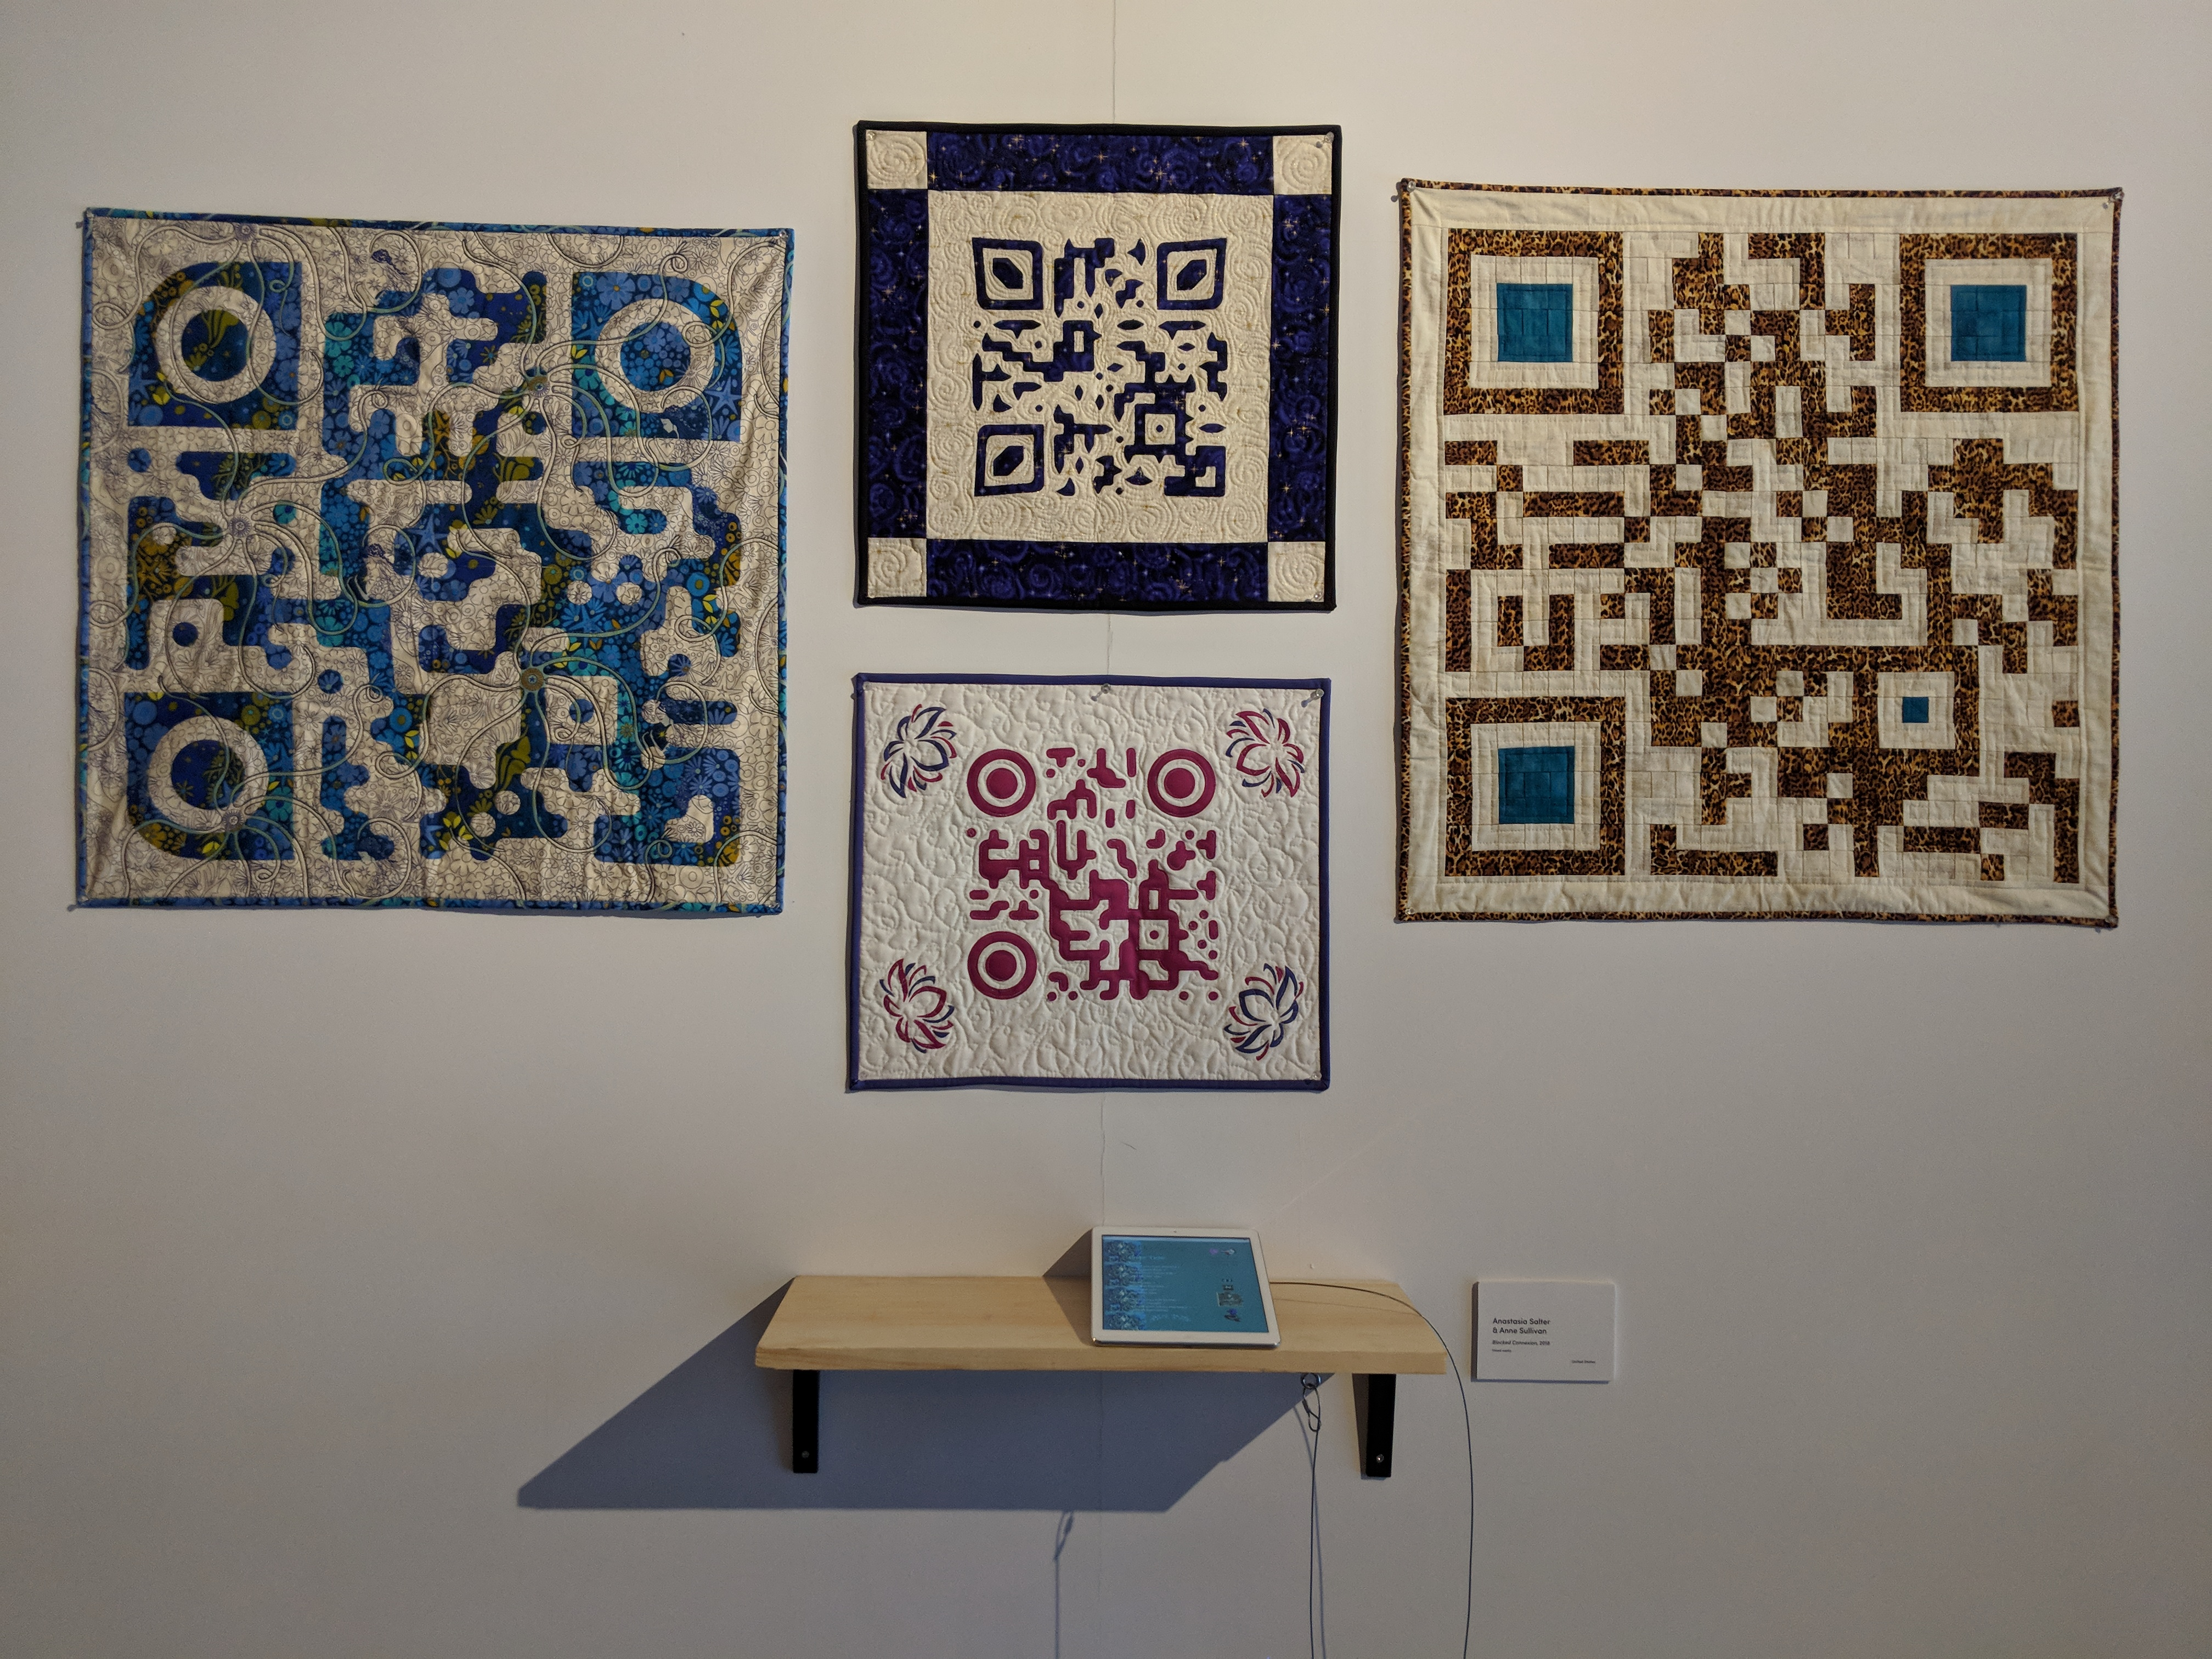 Four quilt blocks, two large and two small hang on a white wall. All four depict QR codes. The two large blocks are hung on either side of the smaller blocks, which are hung vertically with one above the other. Clockwise, starting at 12, the blocks appear as follows: 12 o'clock: a mid-sized border of purple fabric, except for off-white squares in each corner; The QR code is in the center, also in purple, on an off-white background. 3 o'clock (large): an off-white background, the QR code is mostly of brown fabric with three teal squares in the corners. 6 o'clock: a thin purple border around a swuare of white. Each corner has a pink design. In the center, the QR code is a darker pink. 9 o'clock (large); the background is a lightly patterned off-white fabric with a thin blue border; The QR code is made of mottled blue and brown fabric, likely a batik of some sort. Below the quilt squares, a blonde wood floating shelf hangs on the wall. A small white tablet is placed on the shelf.